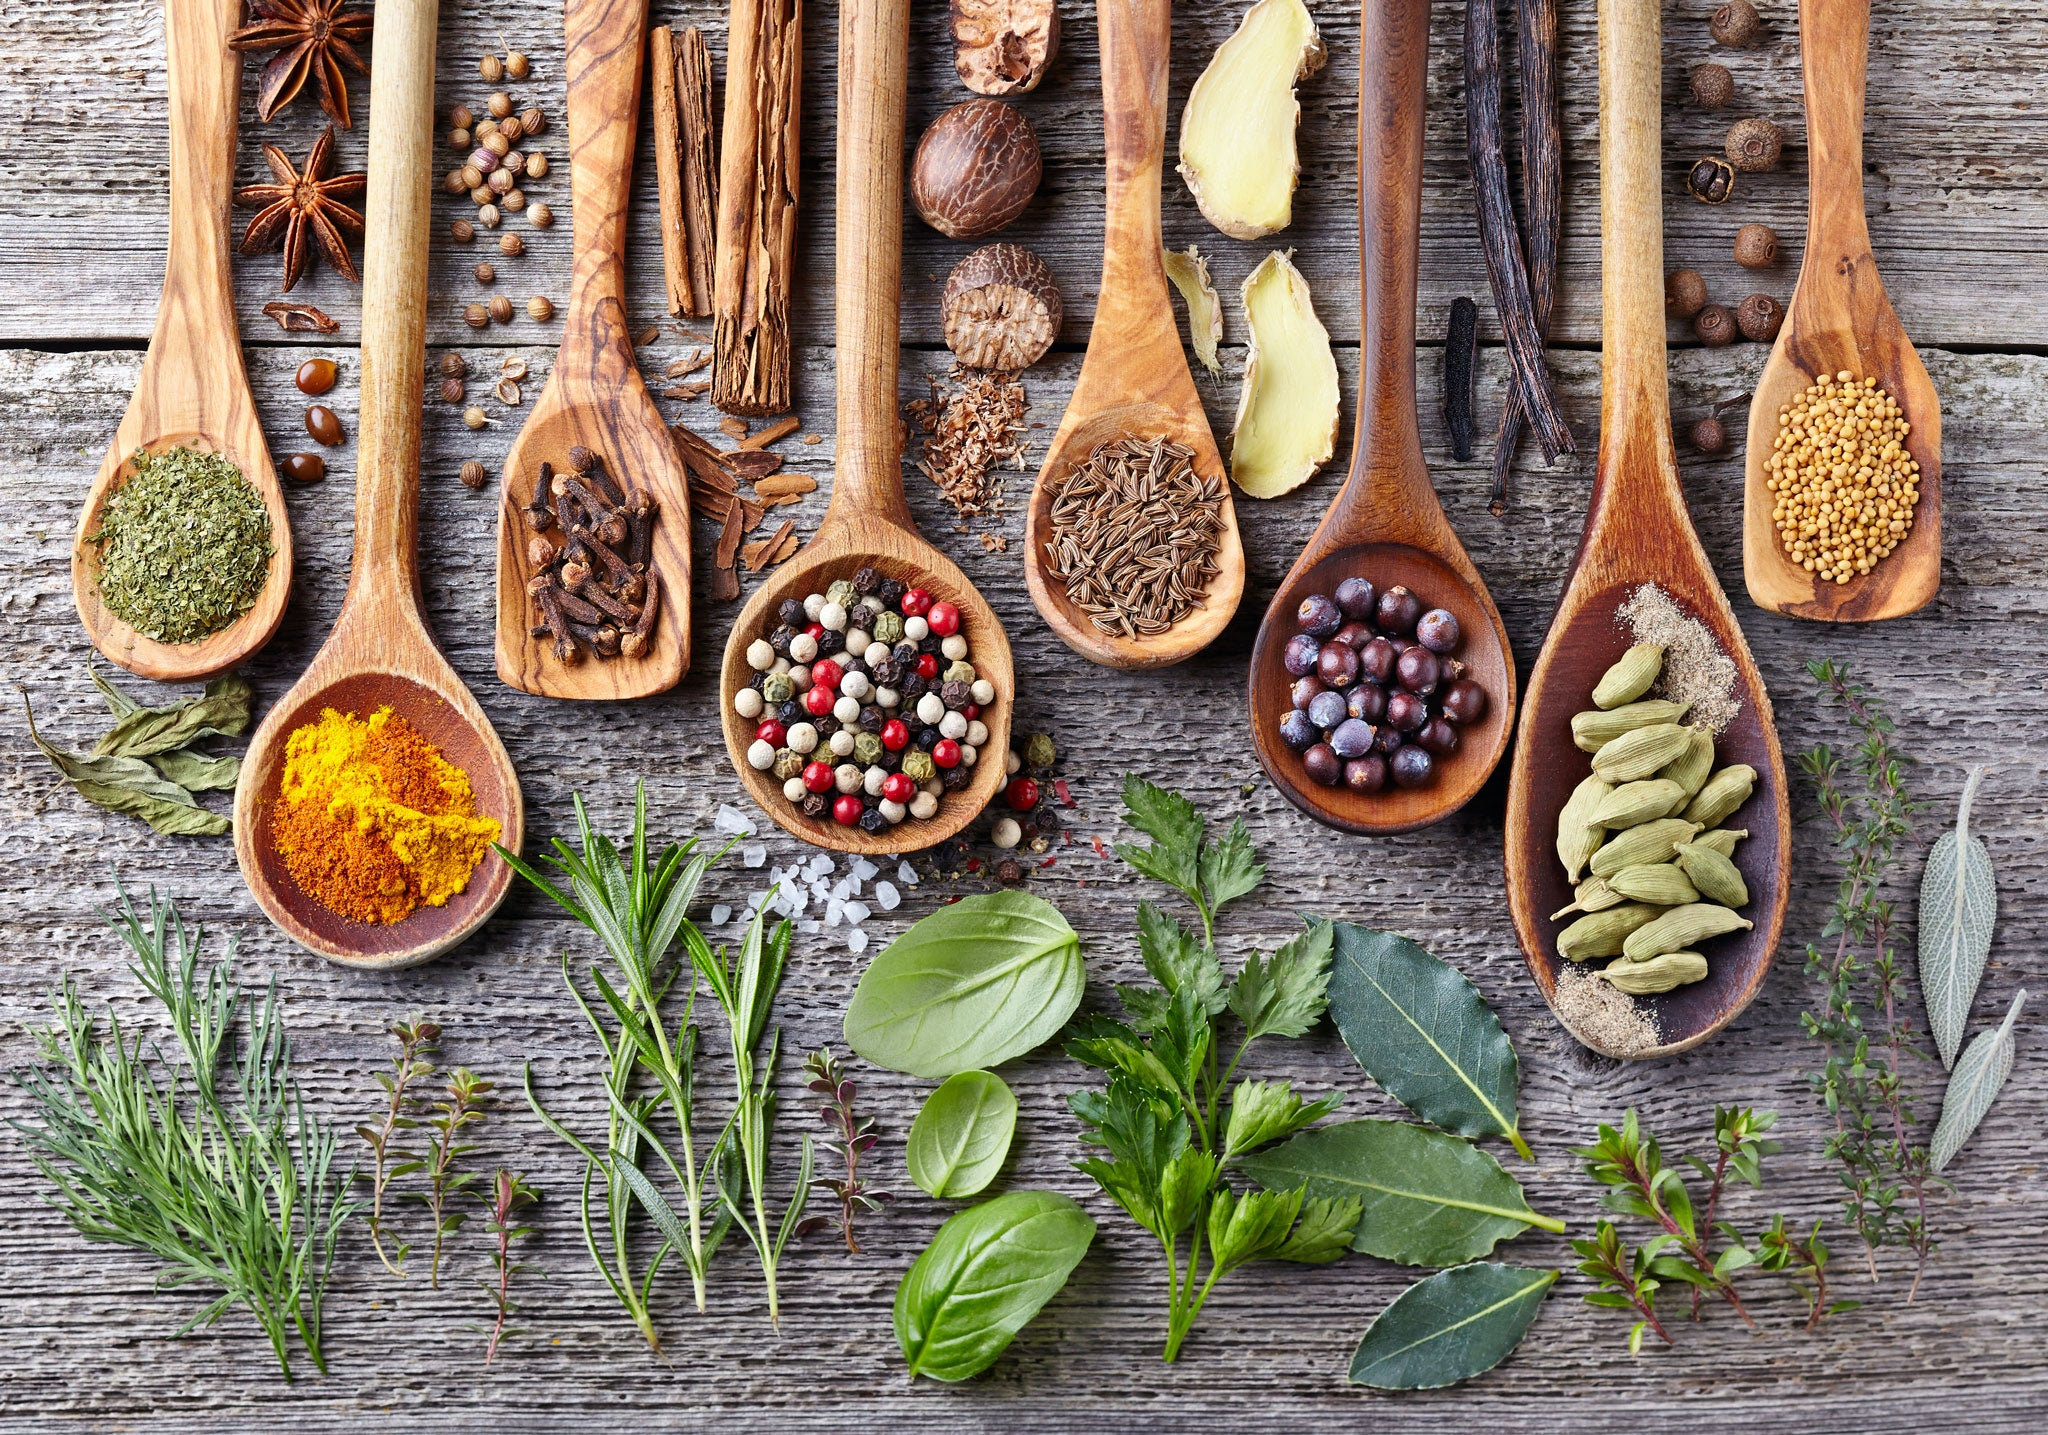 Kitchen Essentials: A List of Herbs and Spices You Should Never Go Without